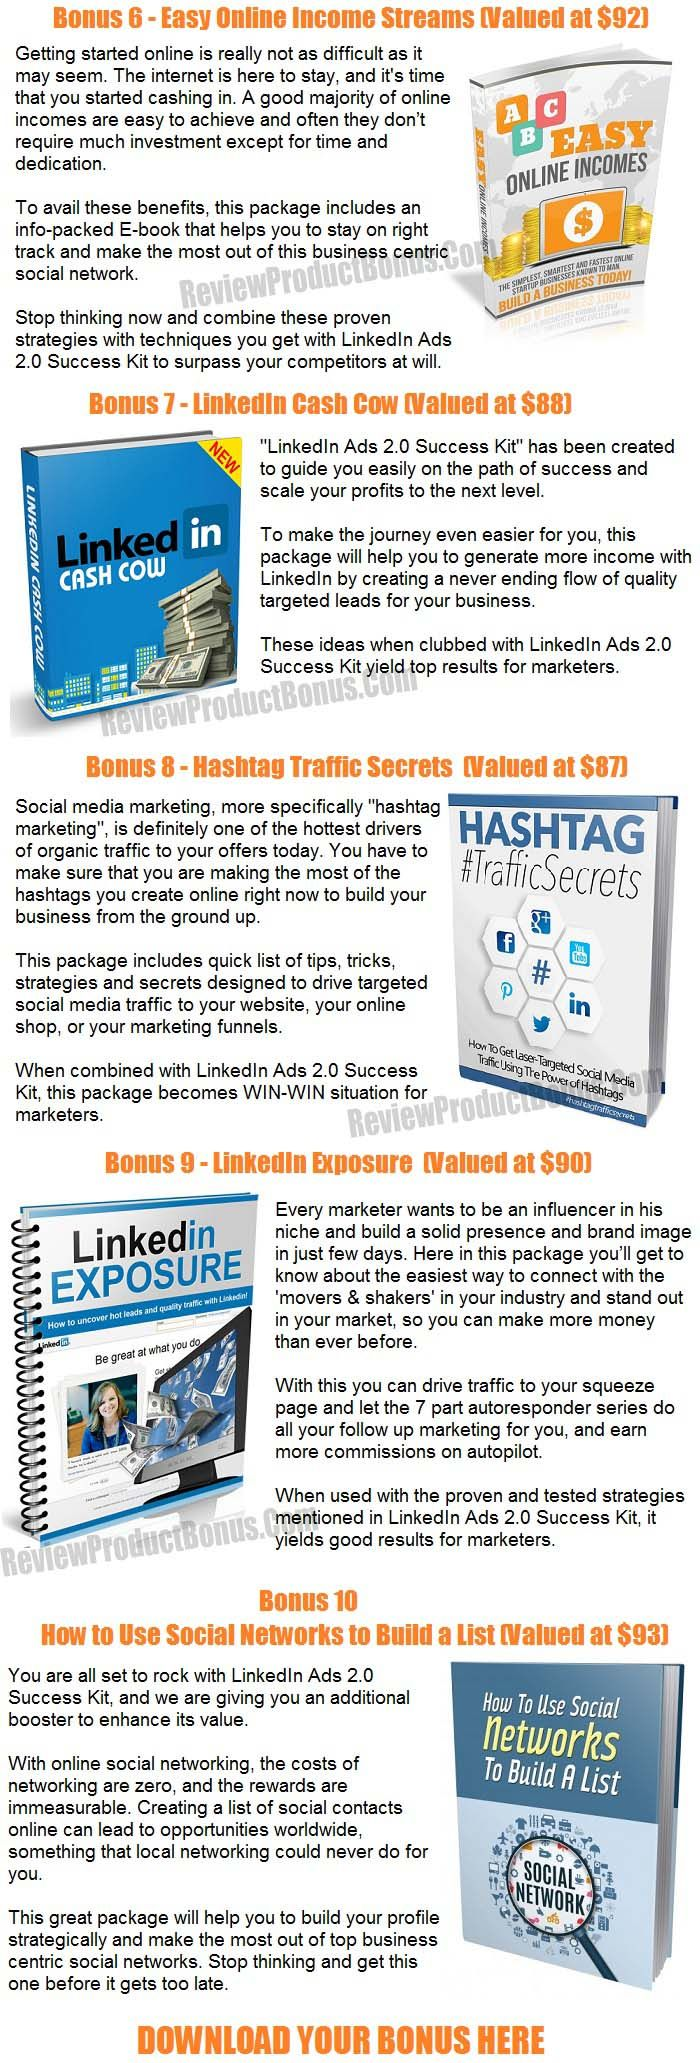 Best PLR Package in LinkedIn Ads Marketing Niche Complete with High Quality Training Guide, Cheat Sheet, Mind Map, High Converting Sales Copy, Report, Mini Sites, Sales https://jvz5.com/c/578789/292459  #linkedin #ads #plr #privatelabel #LinkedInAds2_0 #SuccessKitPLR #PLRMOnthly